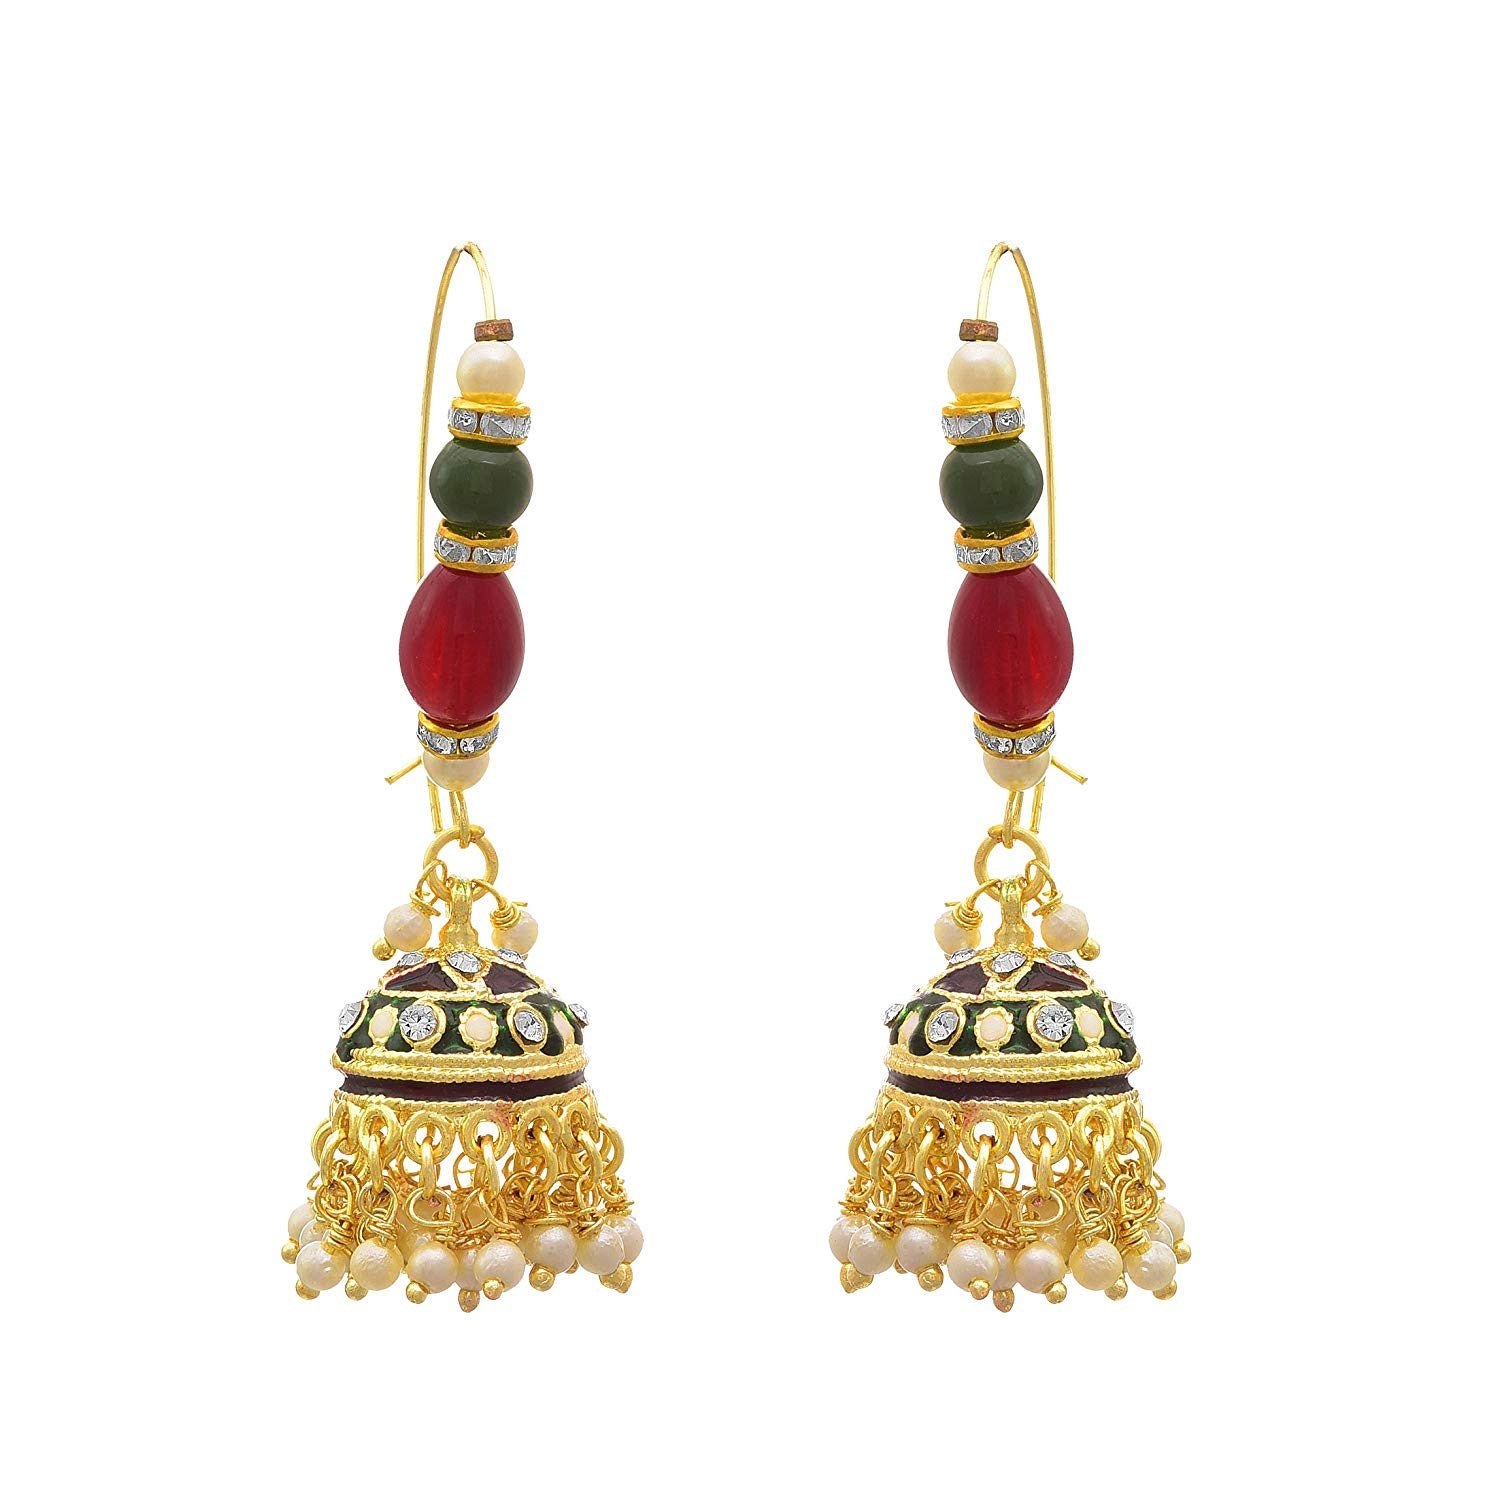 JFL - Jewellery for Less Traditional Ethnic One Gram Gold Plated Pearls Jhumki Earring For Women & Girls.